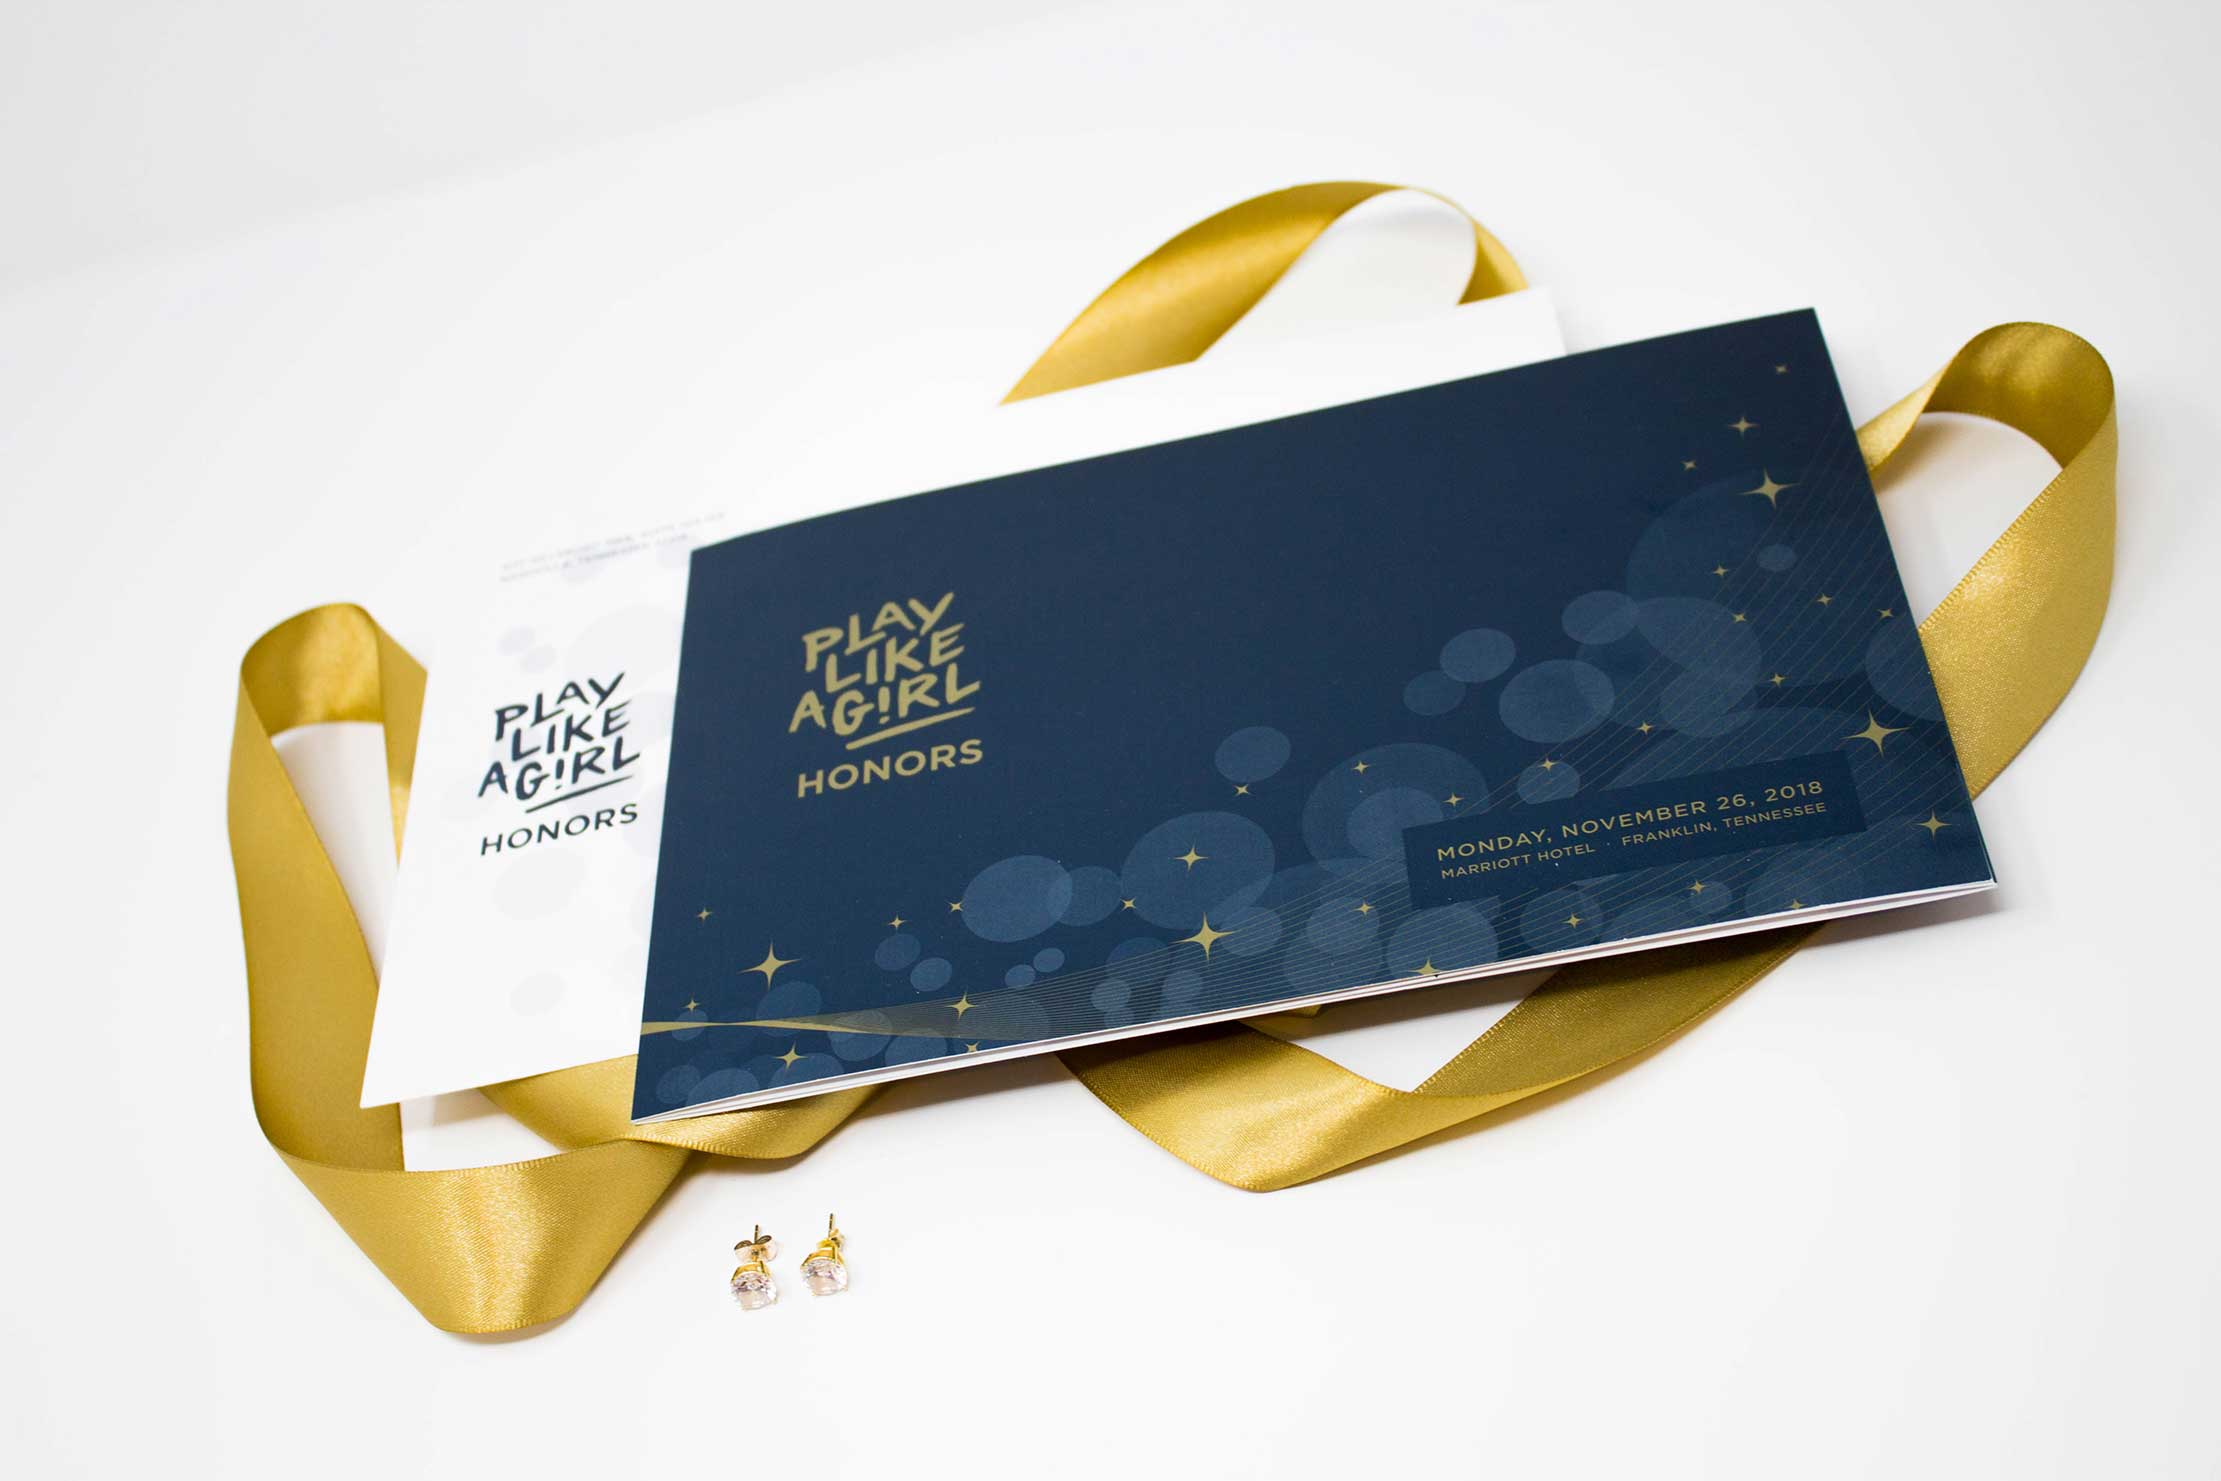 Play Like A Girl Honors Luxury Invitation and Branding